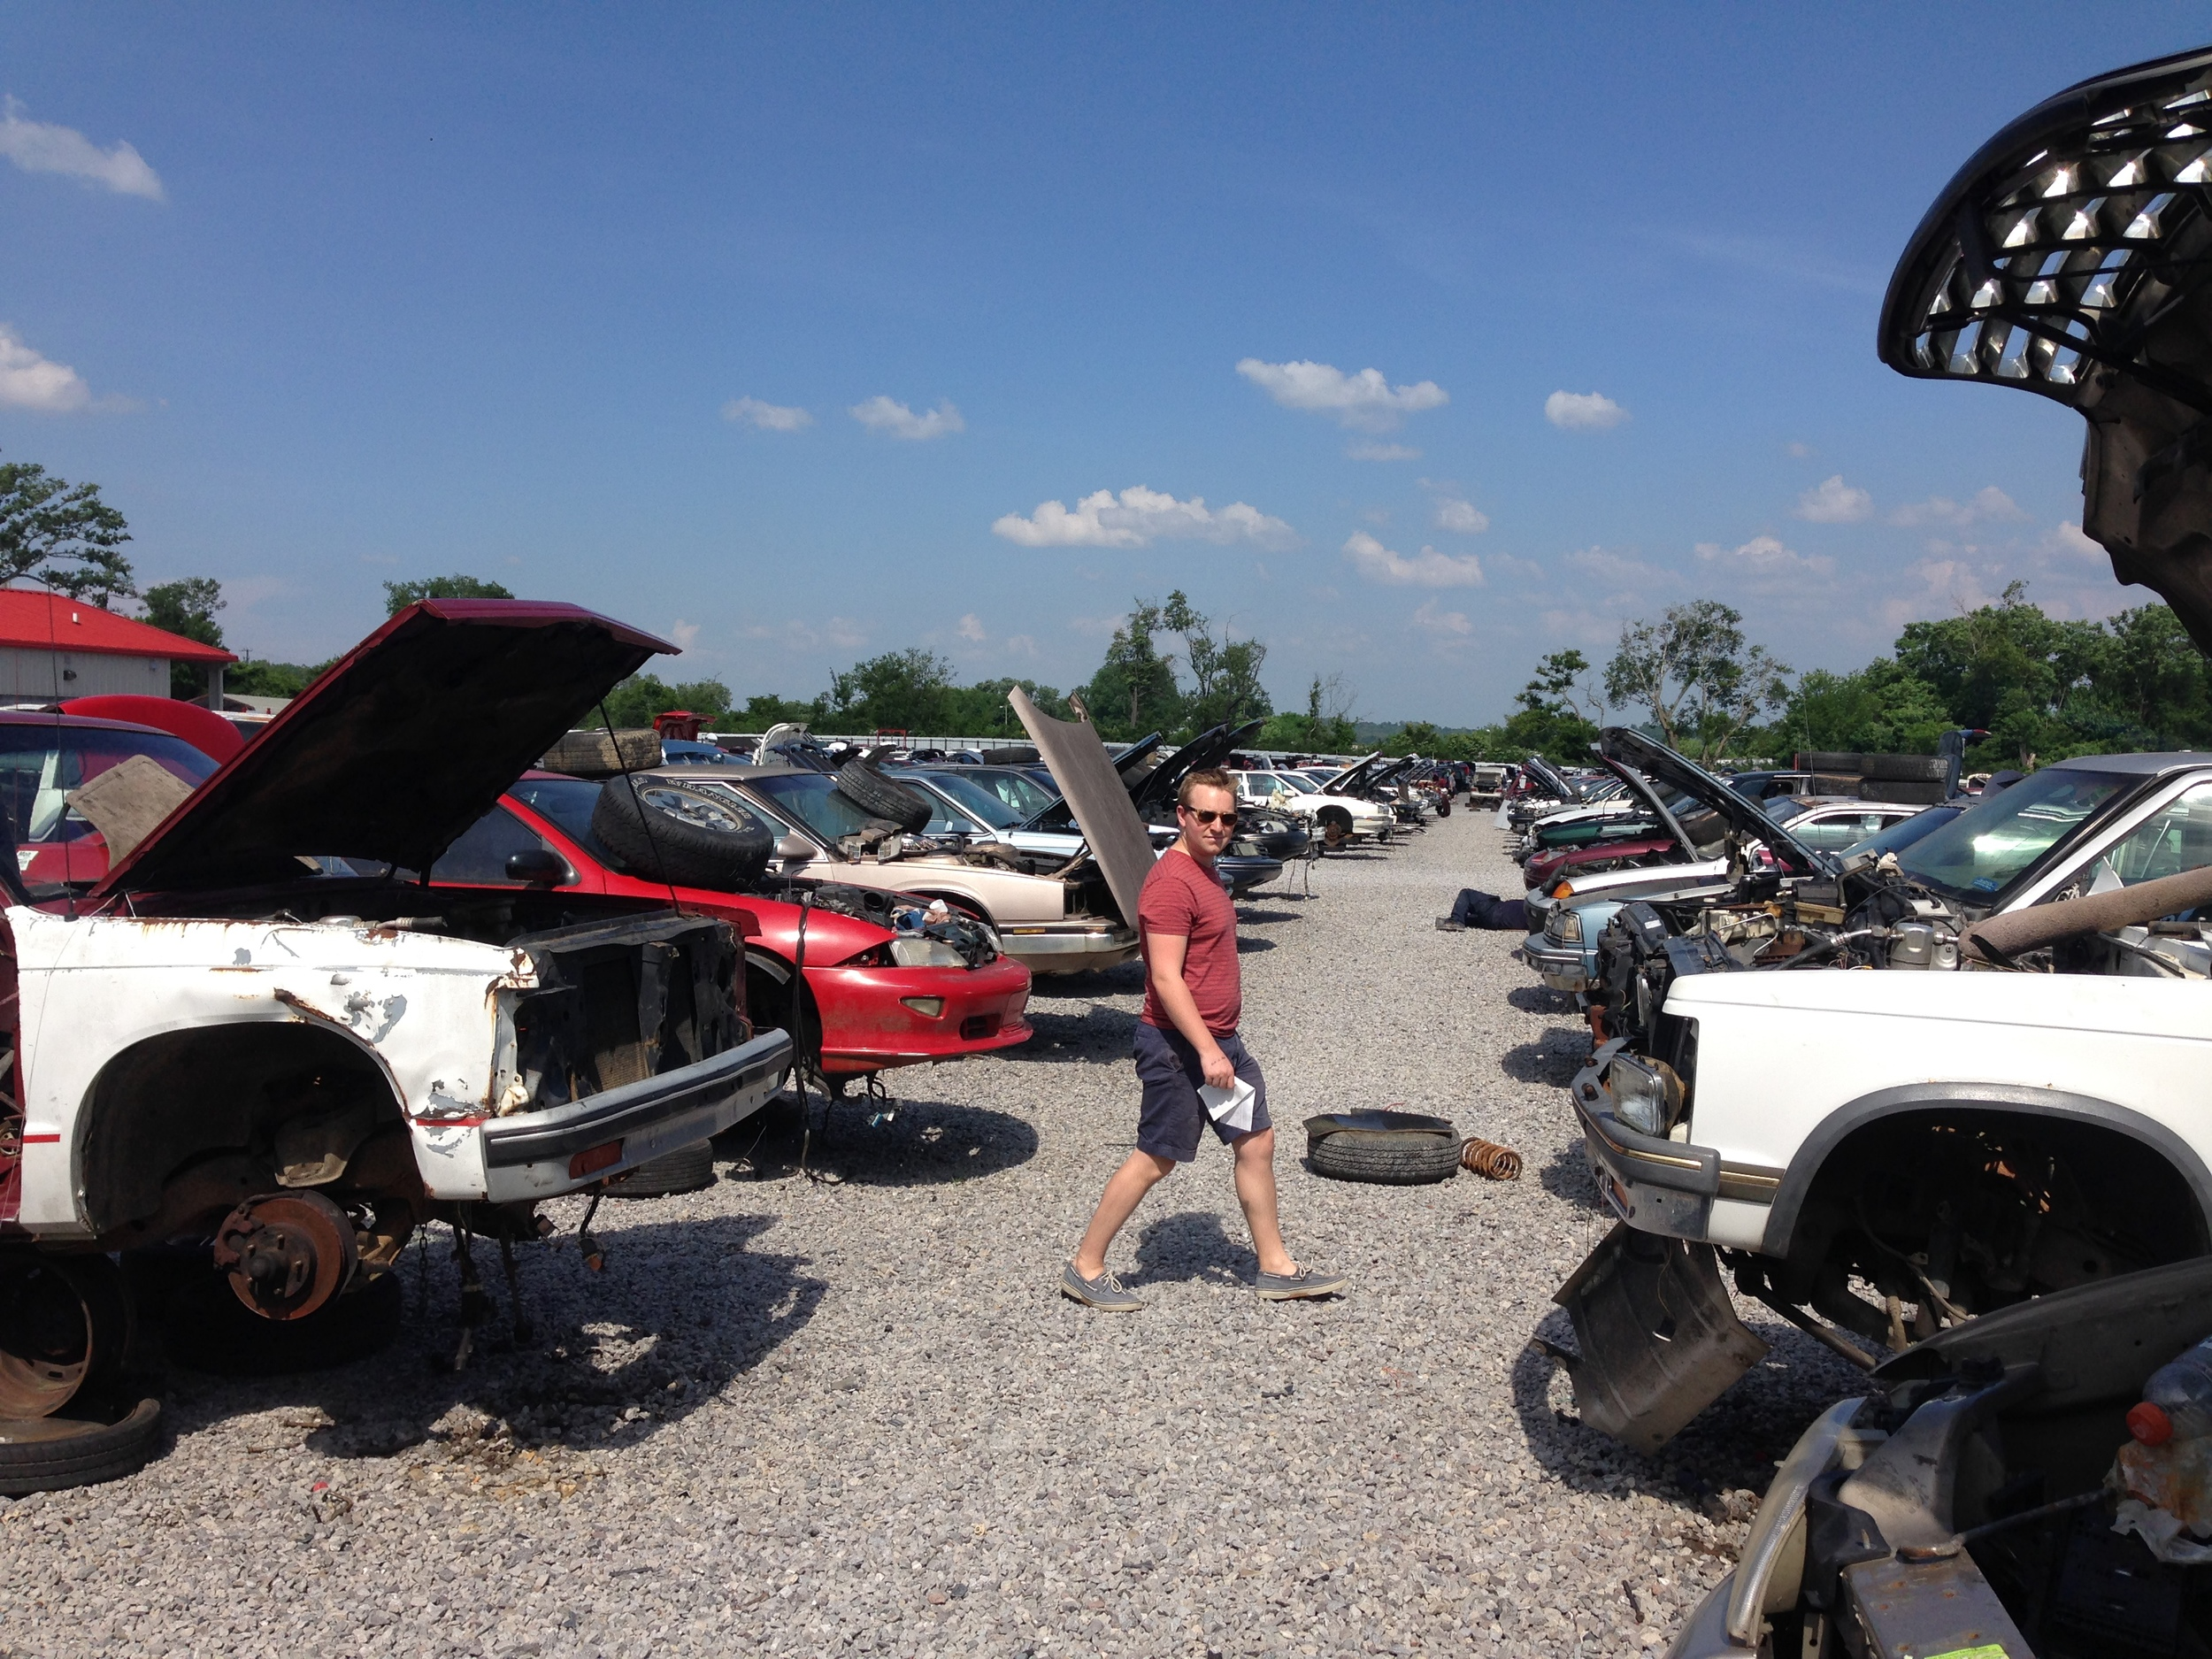 Ben searches through a sea of junkers to find the perfect car radio.